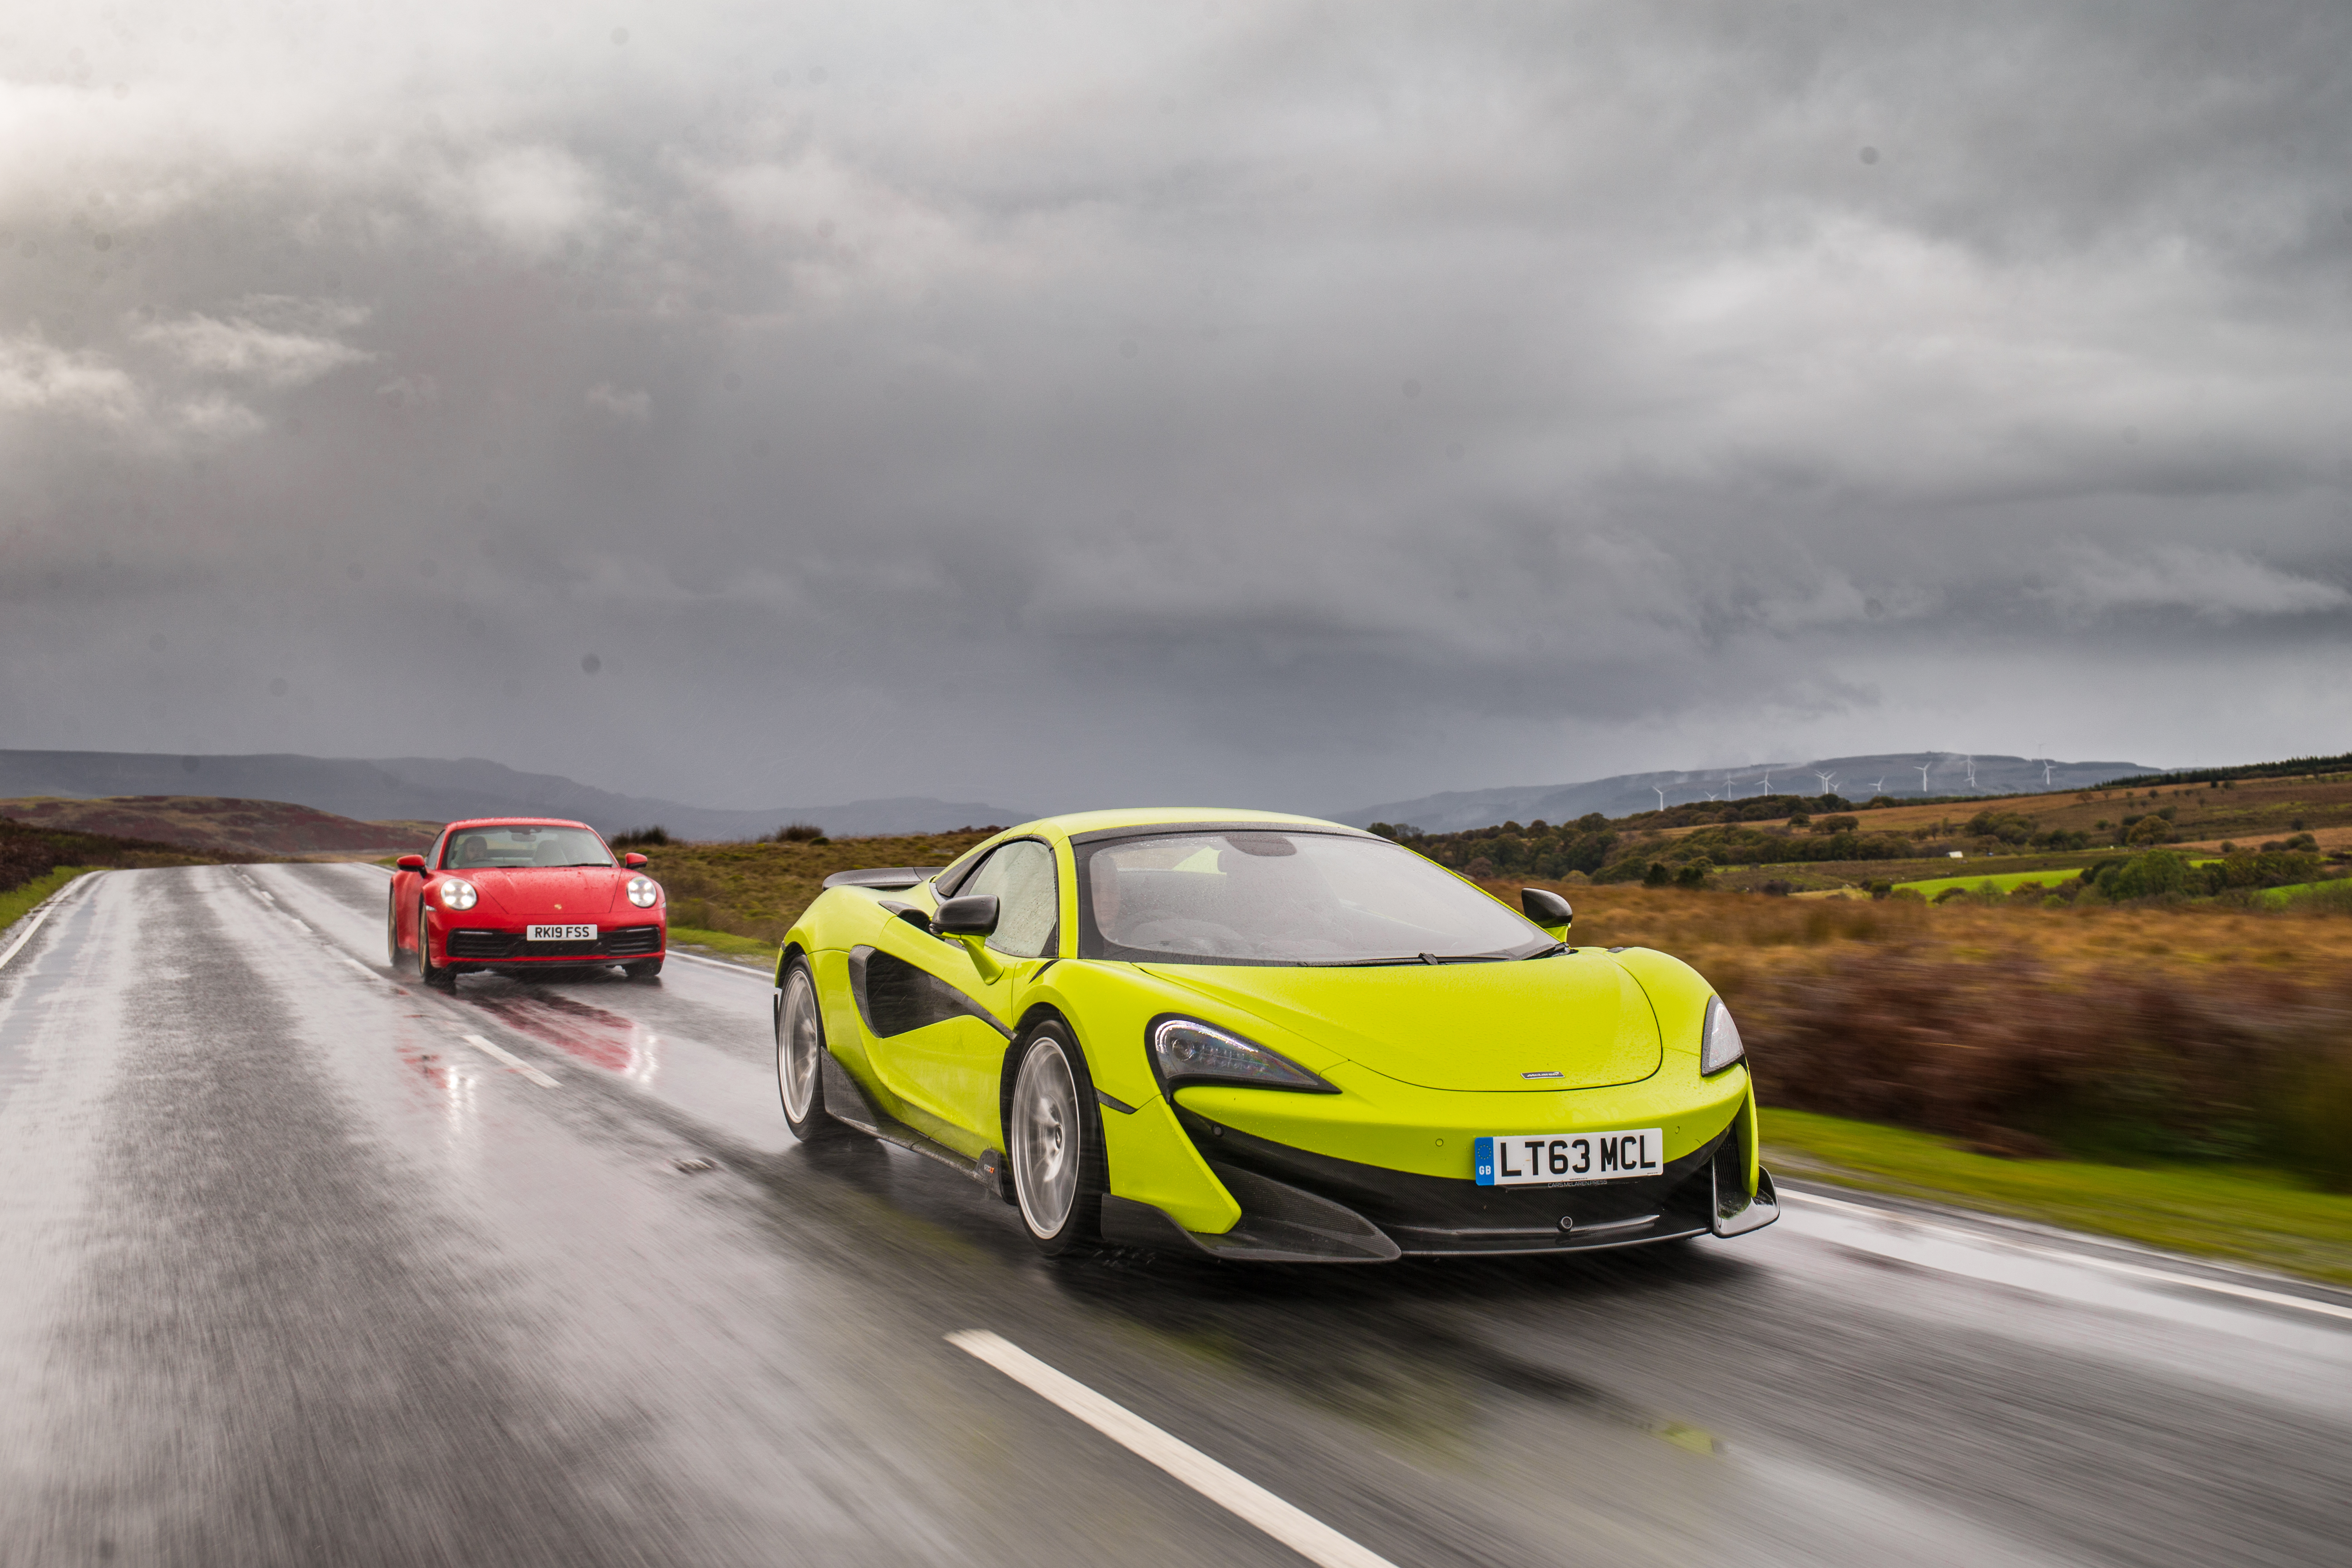 The McLaren proved to be a handful on wet roads